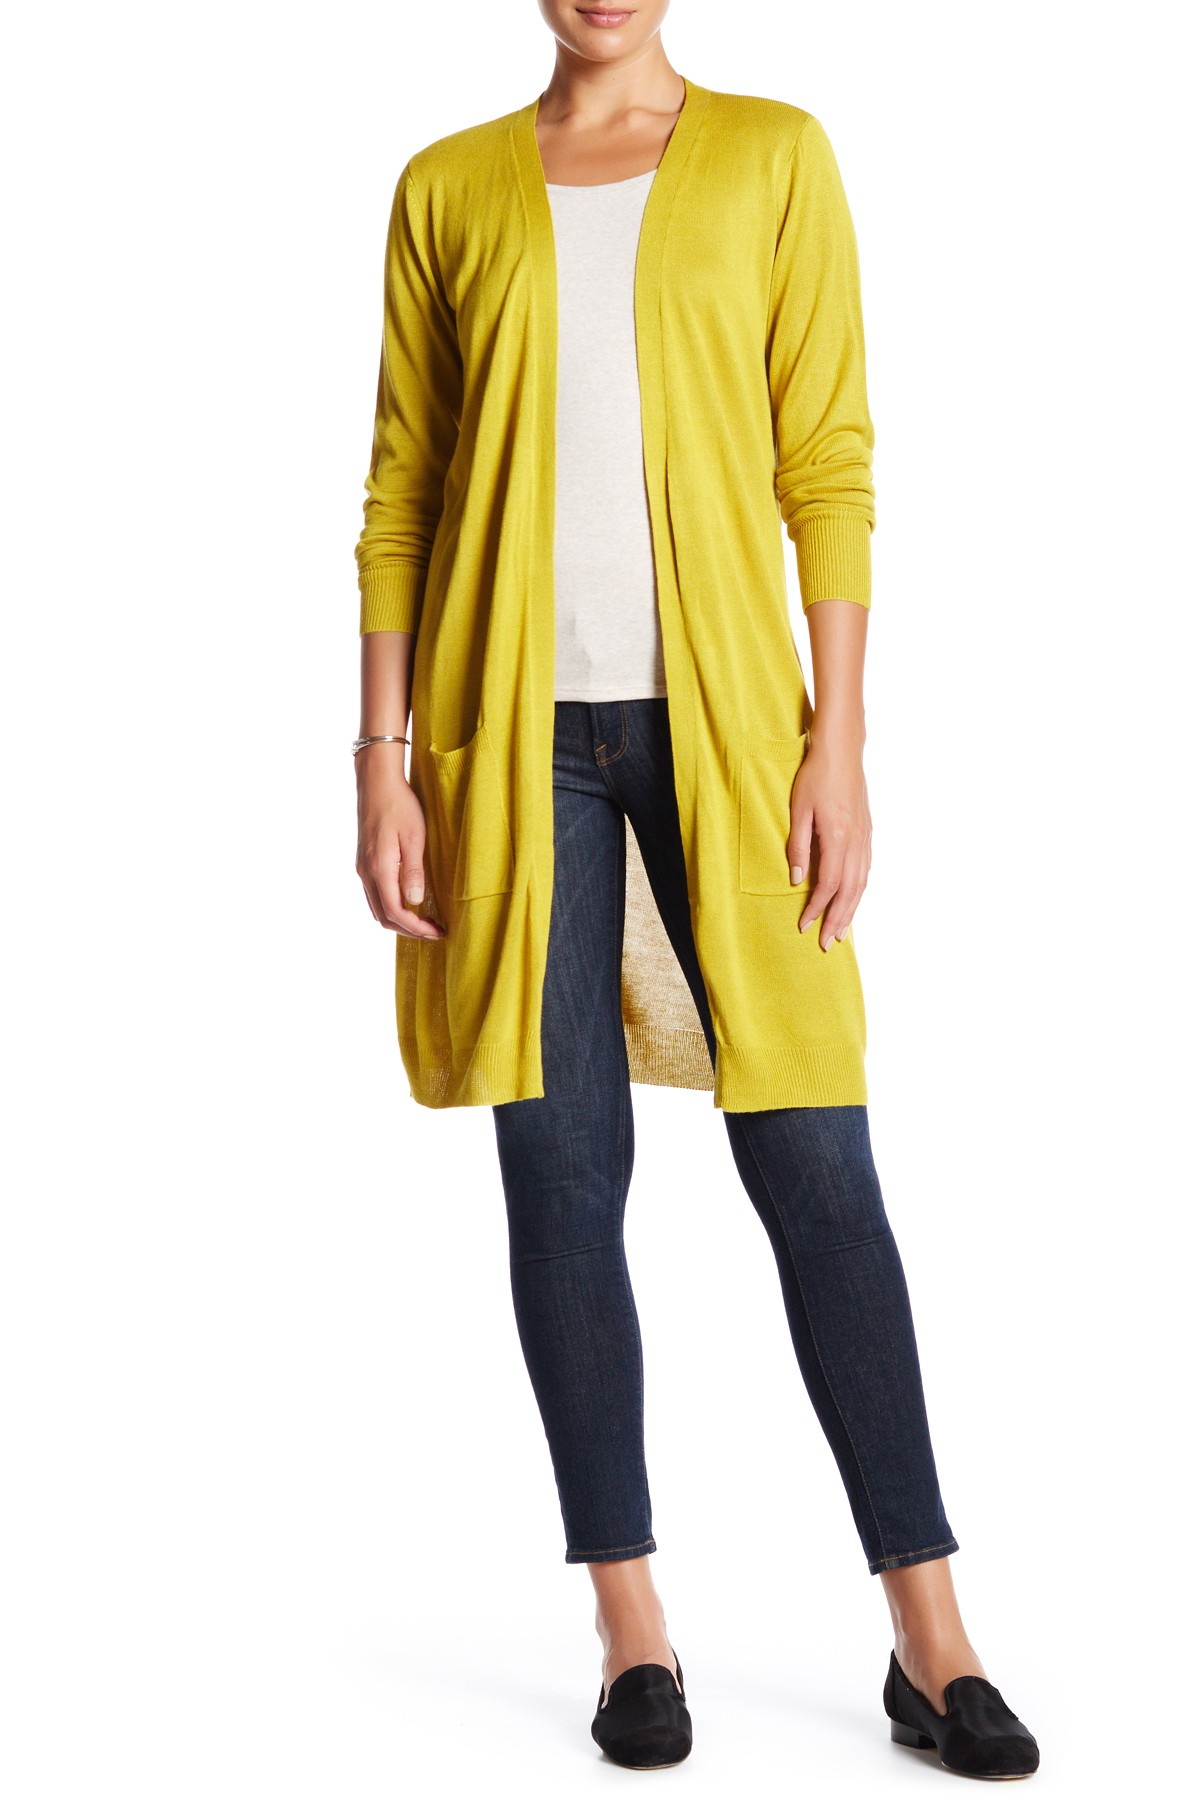 Yellow Duster Cardigan Images - Reverse Search